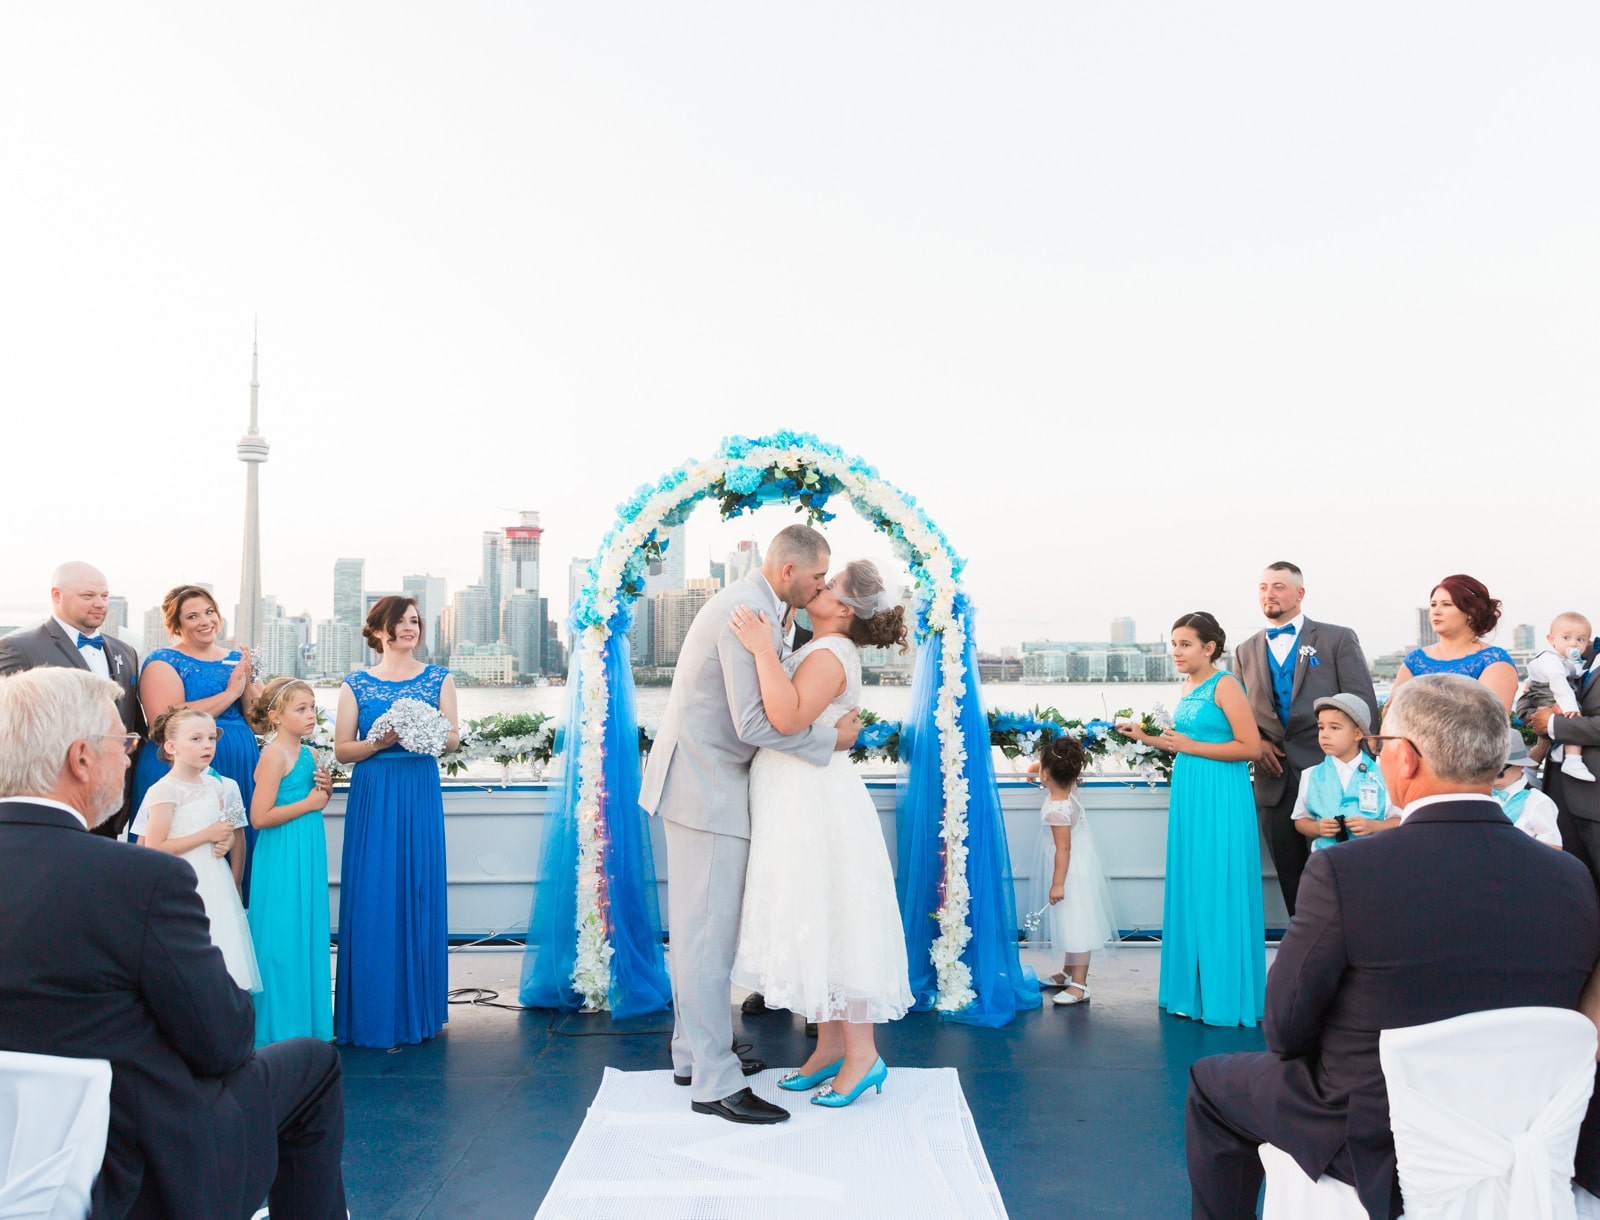 Toronto Mariposa Cruises Wedding Photos: Mariellen + Steven